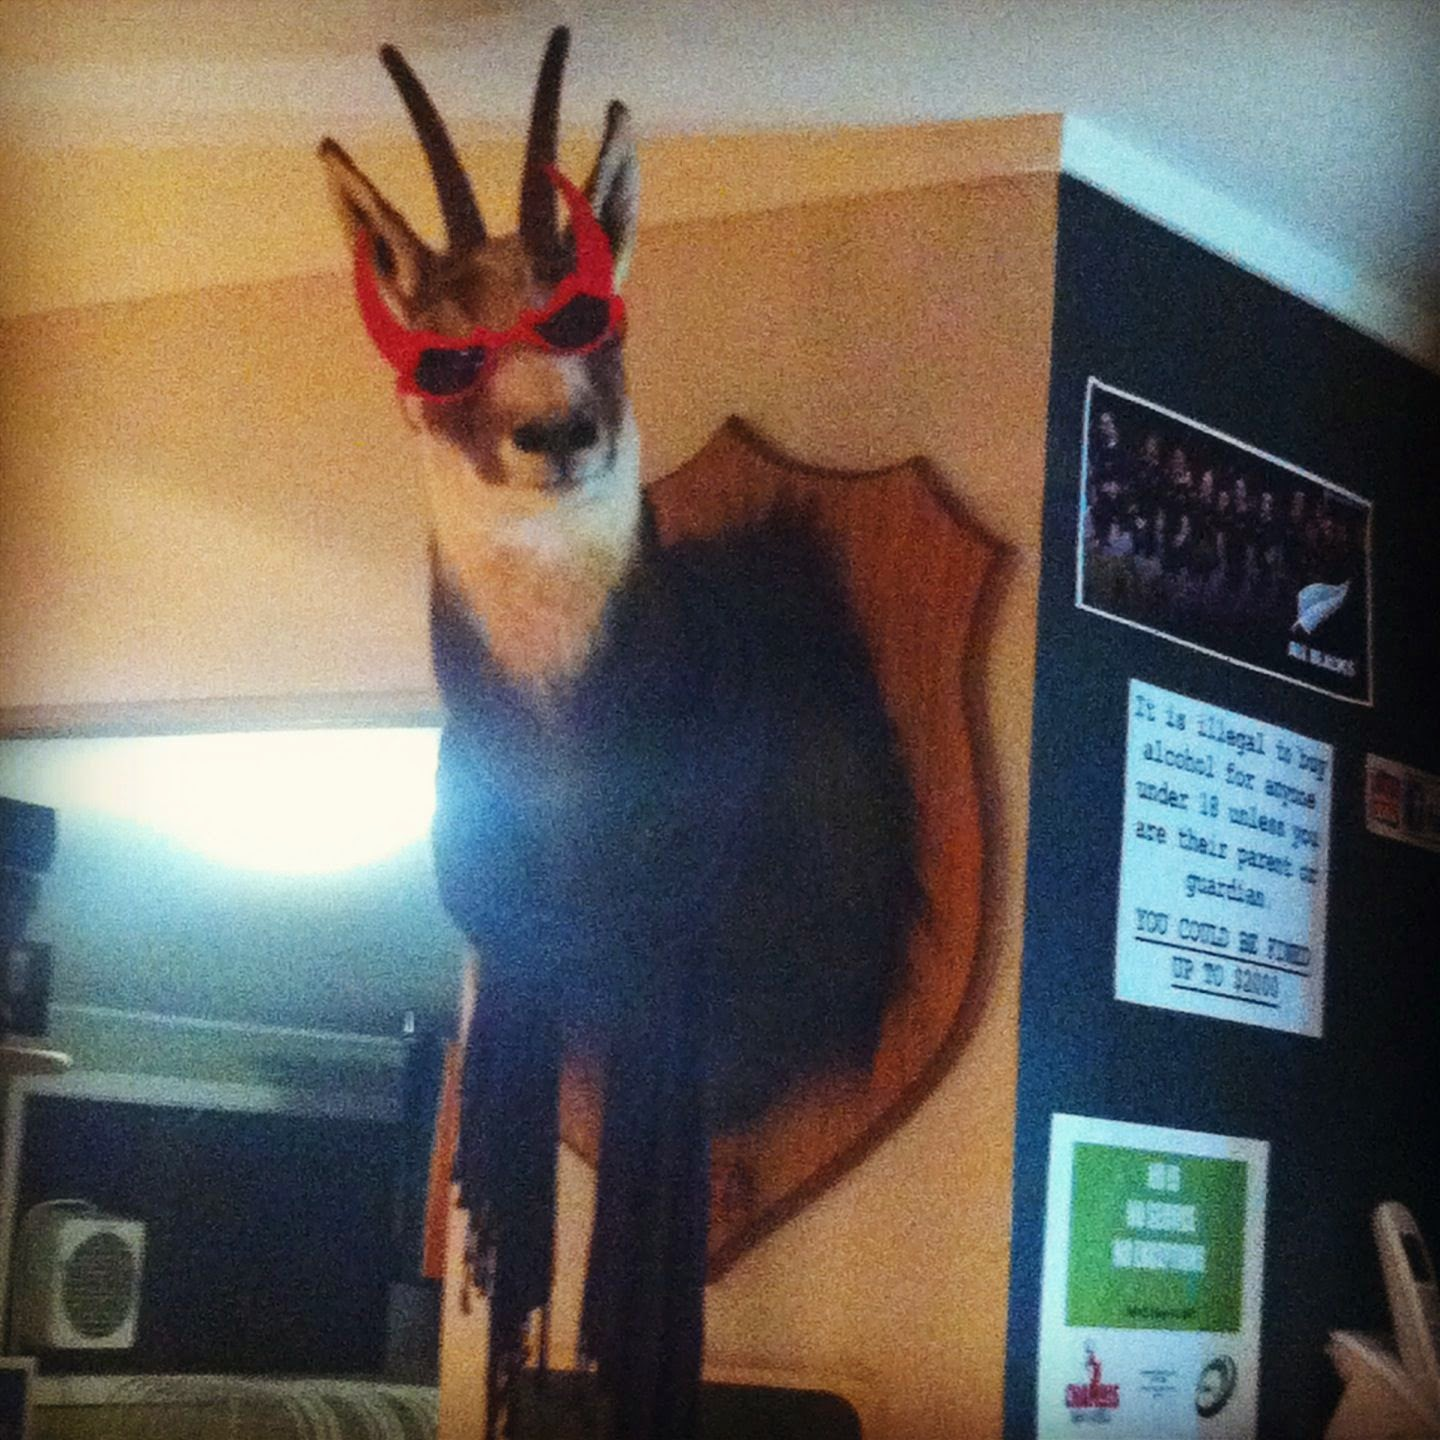 Stuffed deer head wearing sunglasses and a scarf.